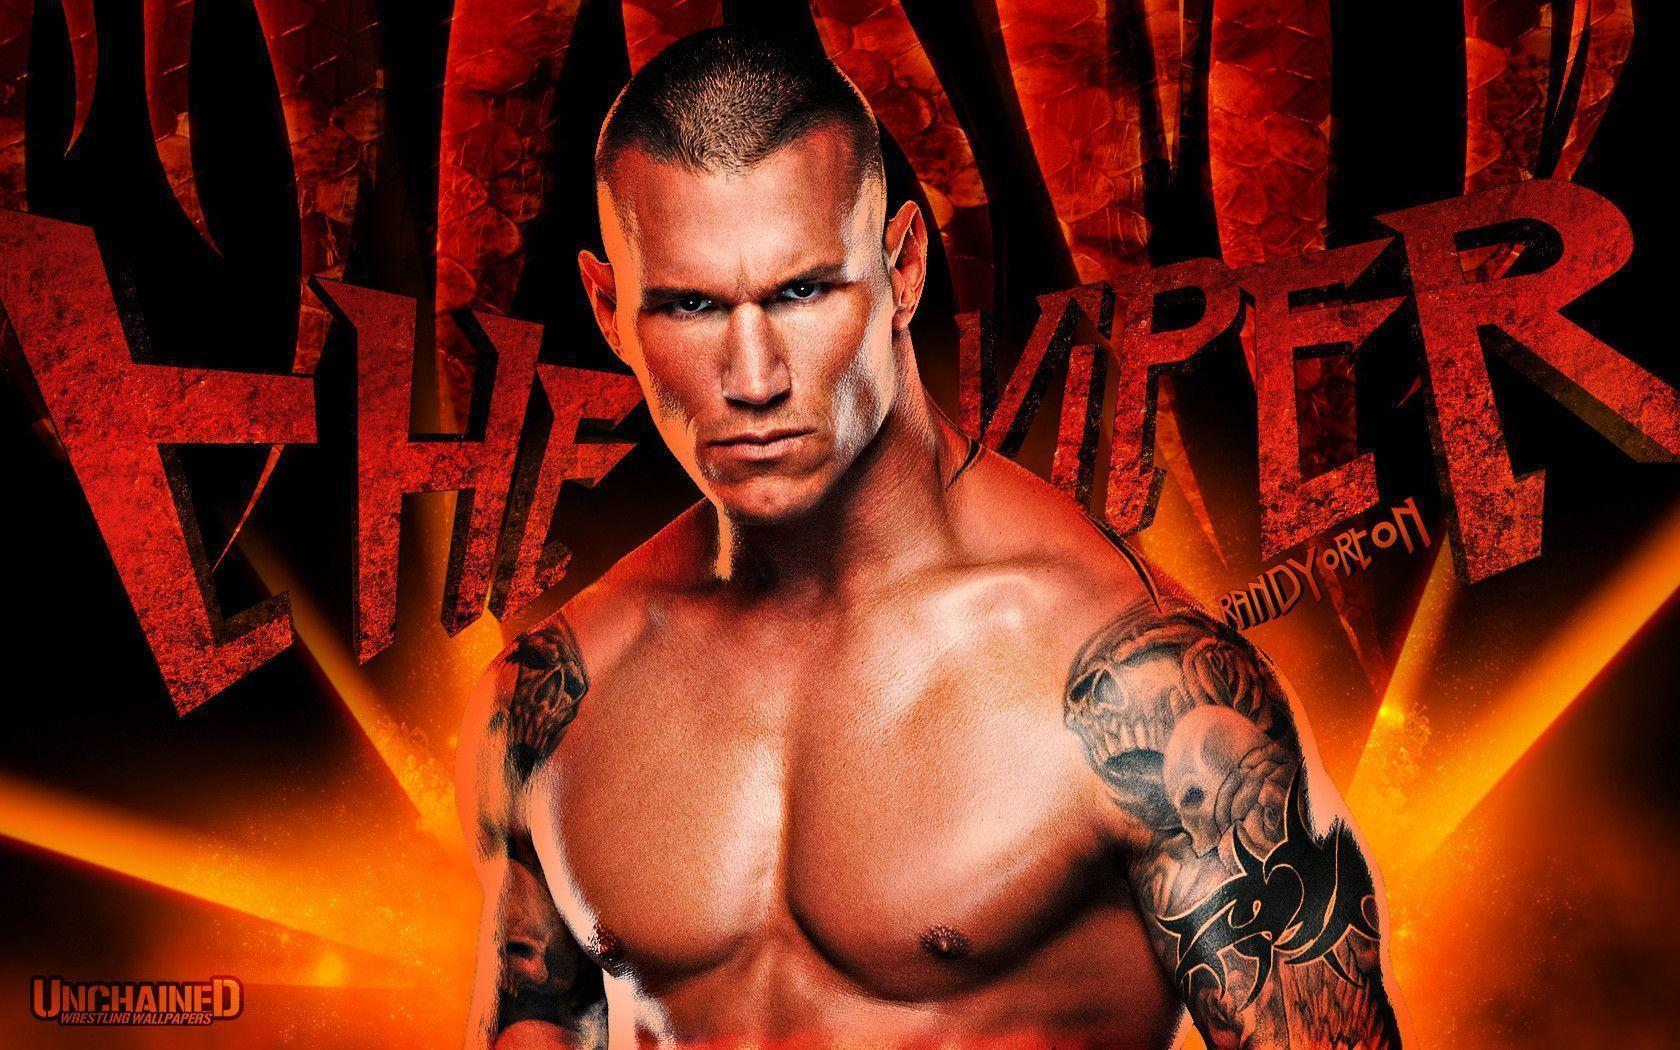 The Viper - Randy Orton Wallpaper (31658863) - Fanpop